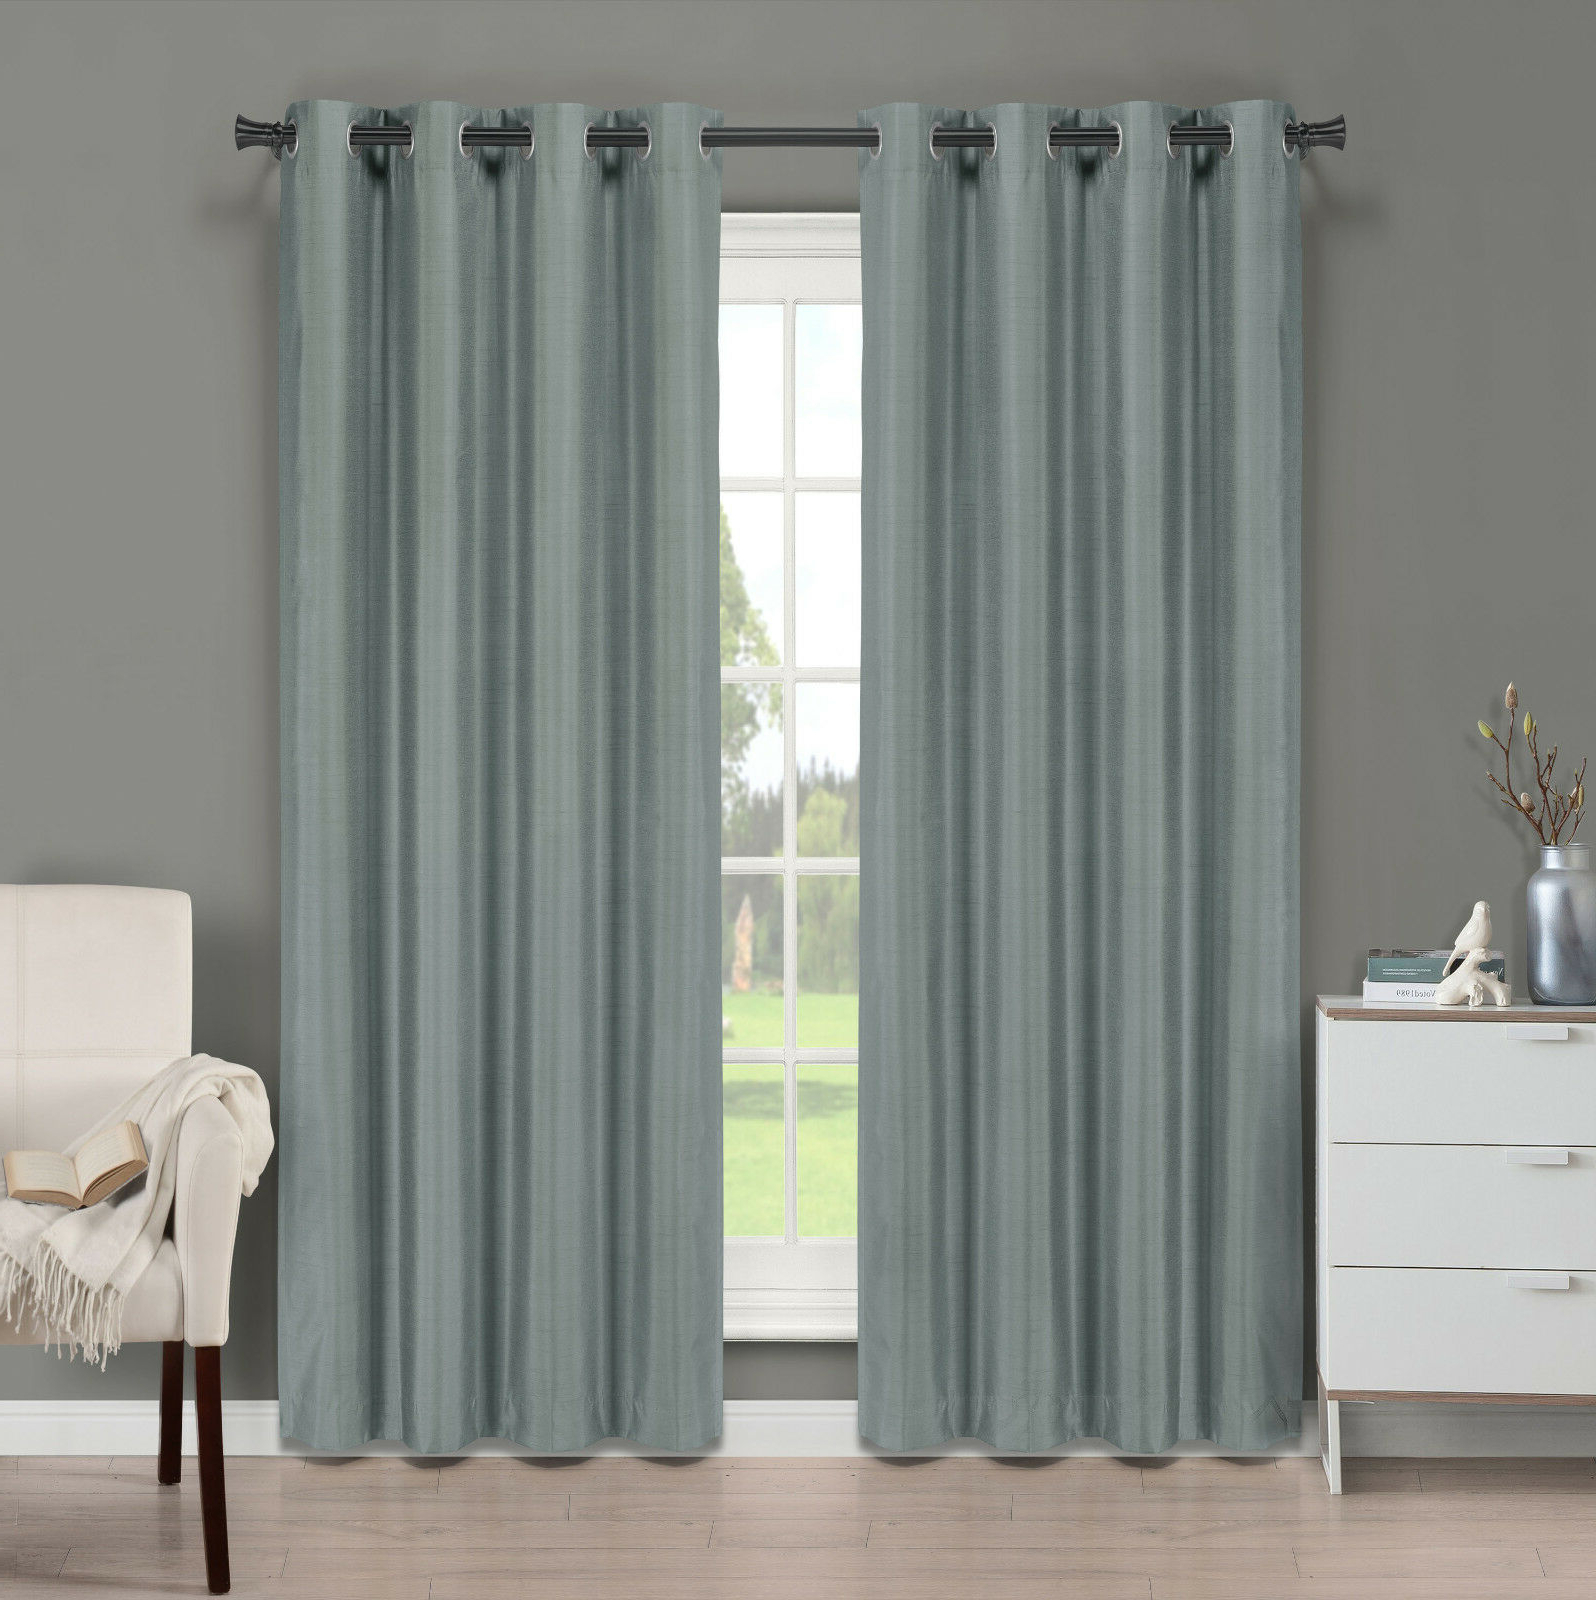 Best And Newest Softline Trenton Grommet Top Curtain Panels Regarding Brielle Fortune Faux Dupioni Silk Lined Curtain Panel (View 19 of 20)